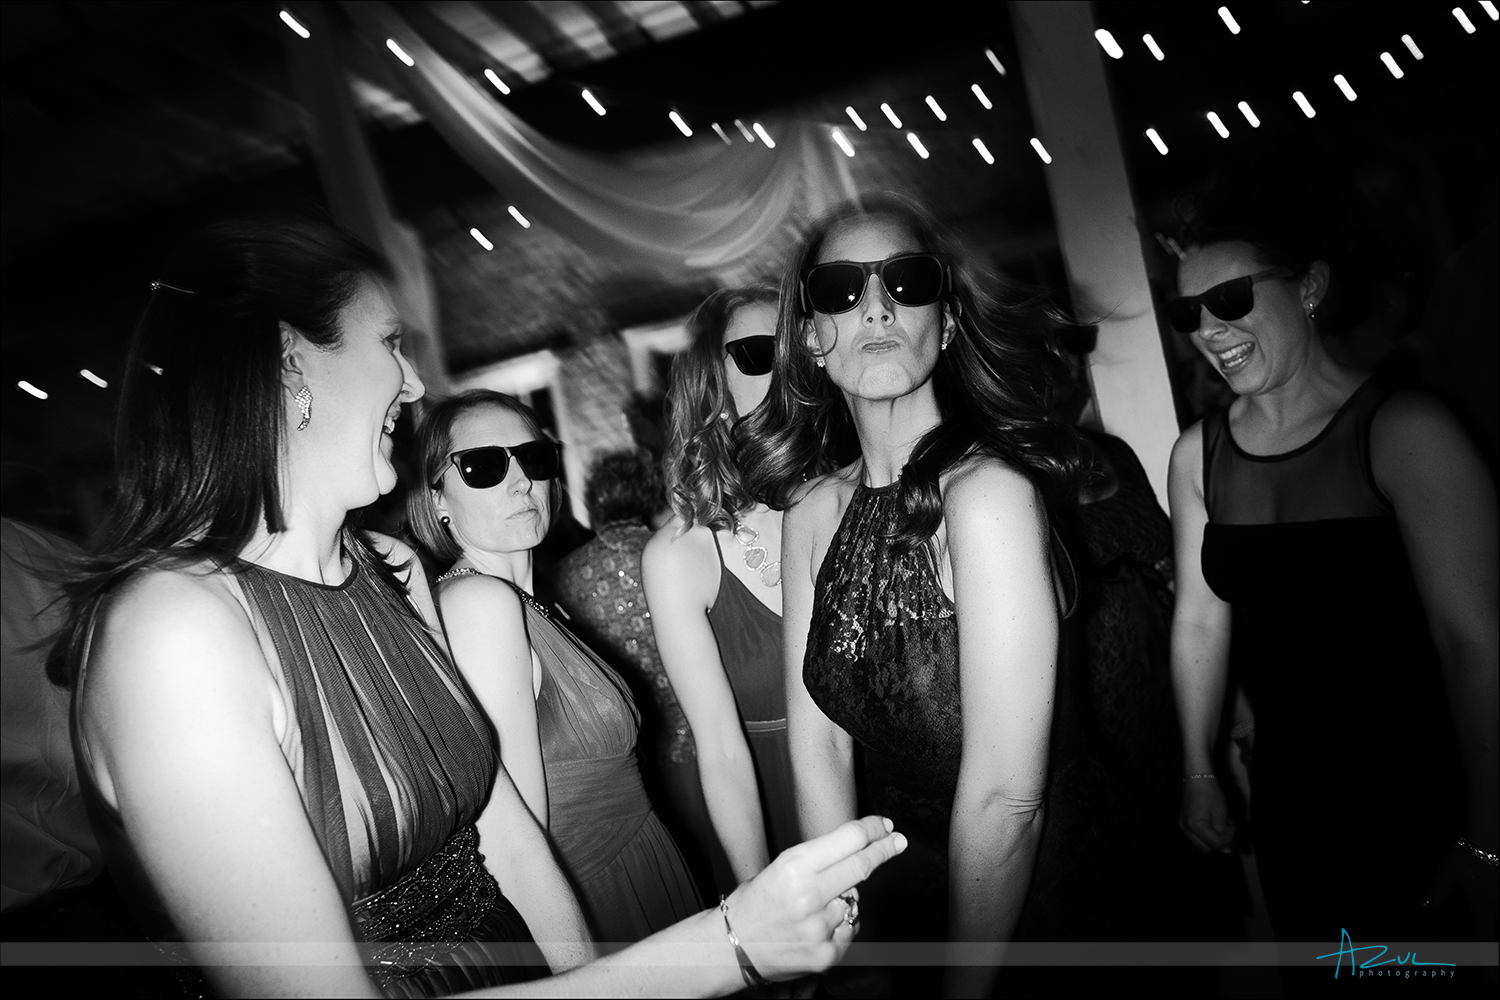 Sunglasses on wedding day as gifts for guests at The Stockroom NC